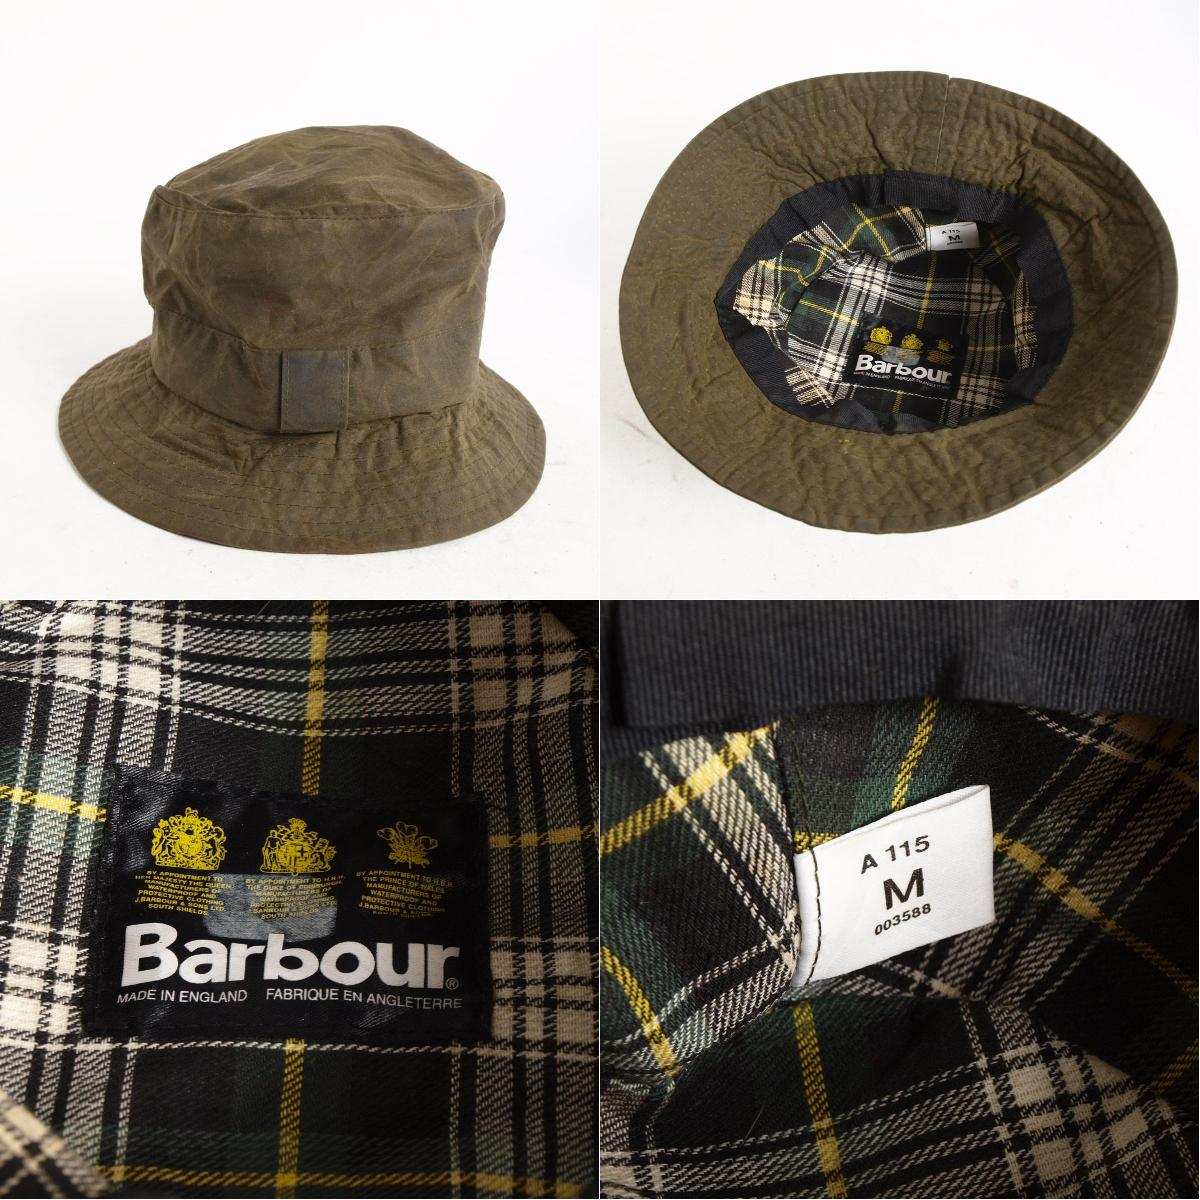 90年代3 warantobabua英国制造oirudokottonhatto Barbour/anb3429